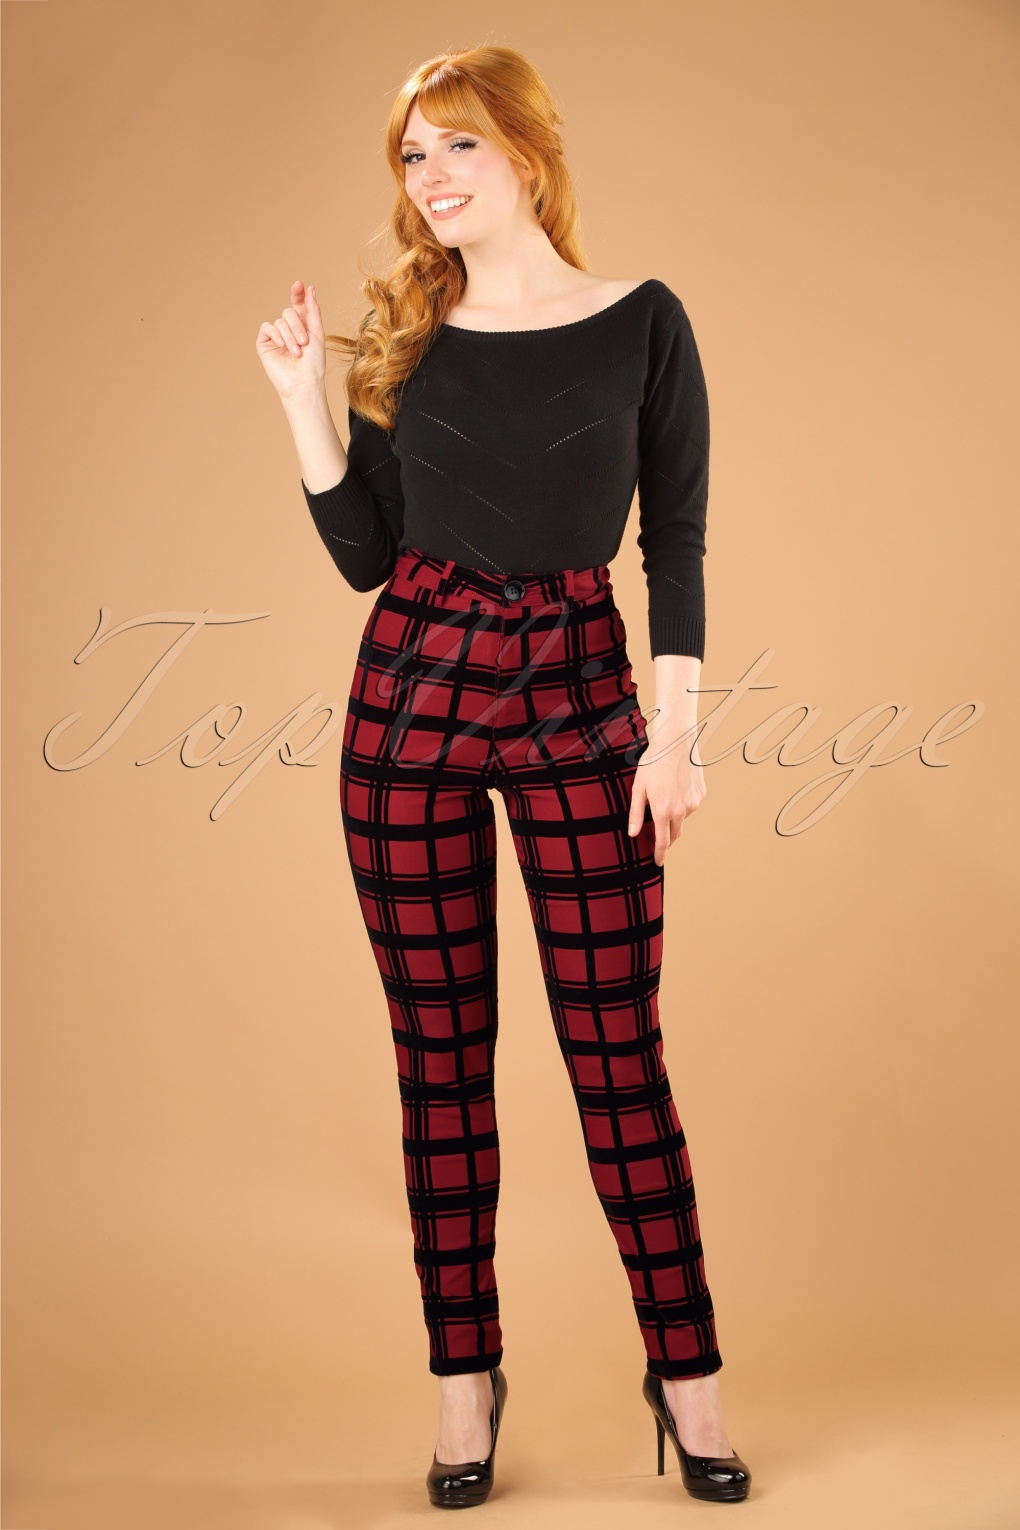 Vintage High Waisted Trousers, Sailor Pants, Jeans 50s Maddie Flock Check Trousers in Wine £51.51 AT vintagedancer.com